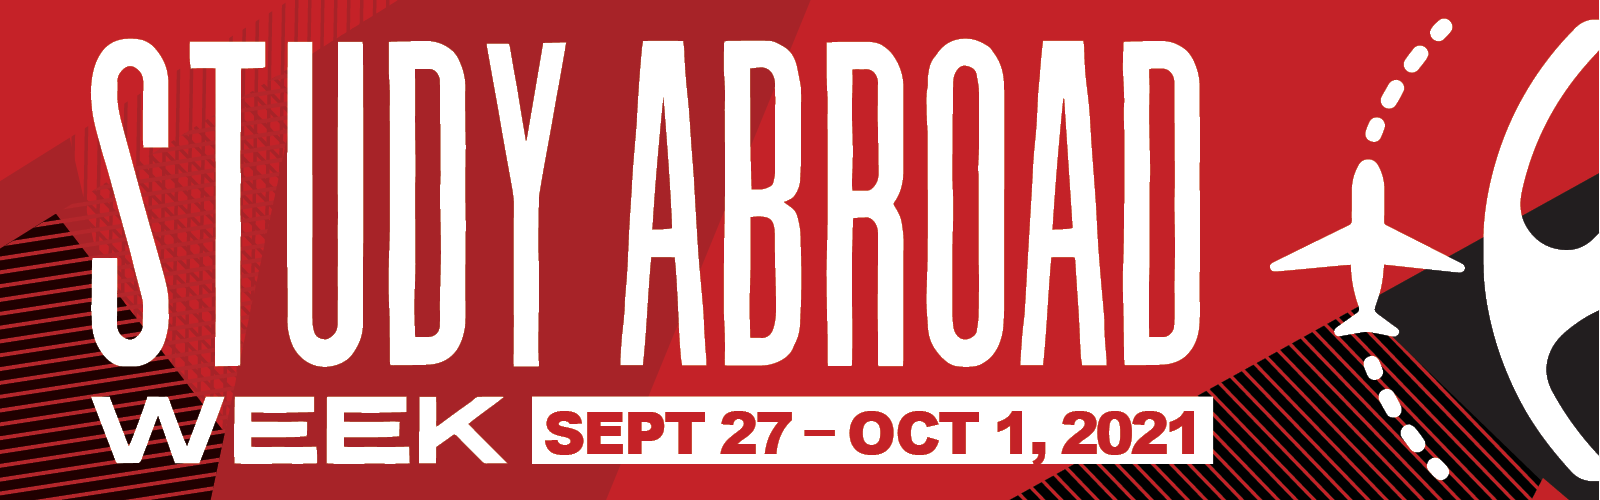 Study ABroad Week Sept 27-Oct 1, 2021